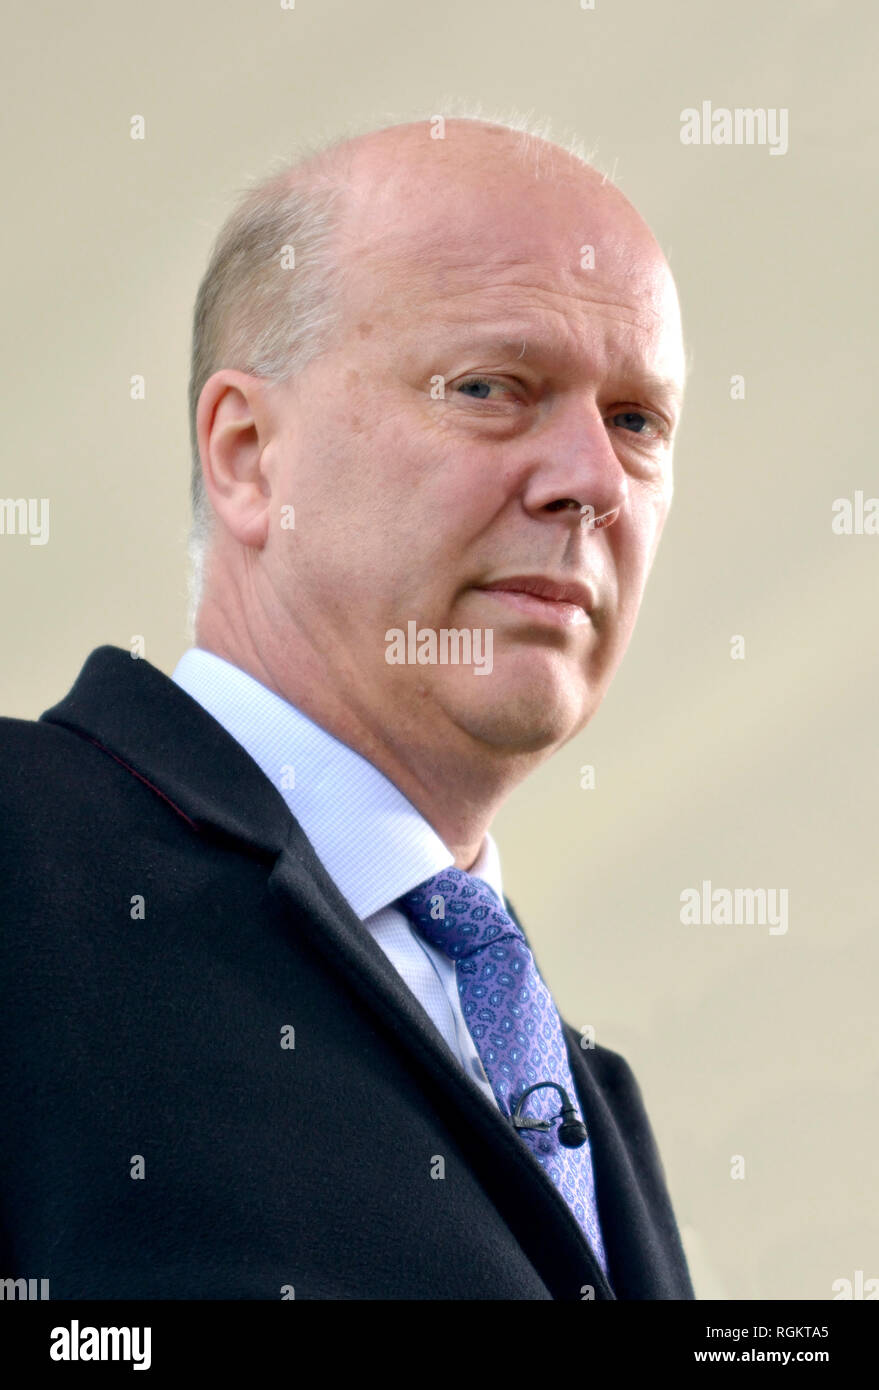 Chris Grayling MP (Conservative: Epsom and Ewell), Transport Secretary, on College Green, Westminster, June 2016 - Stock Image